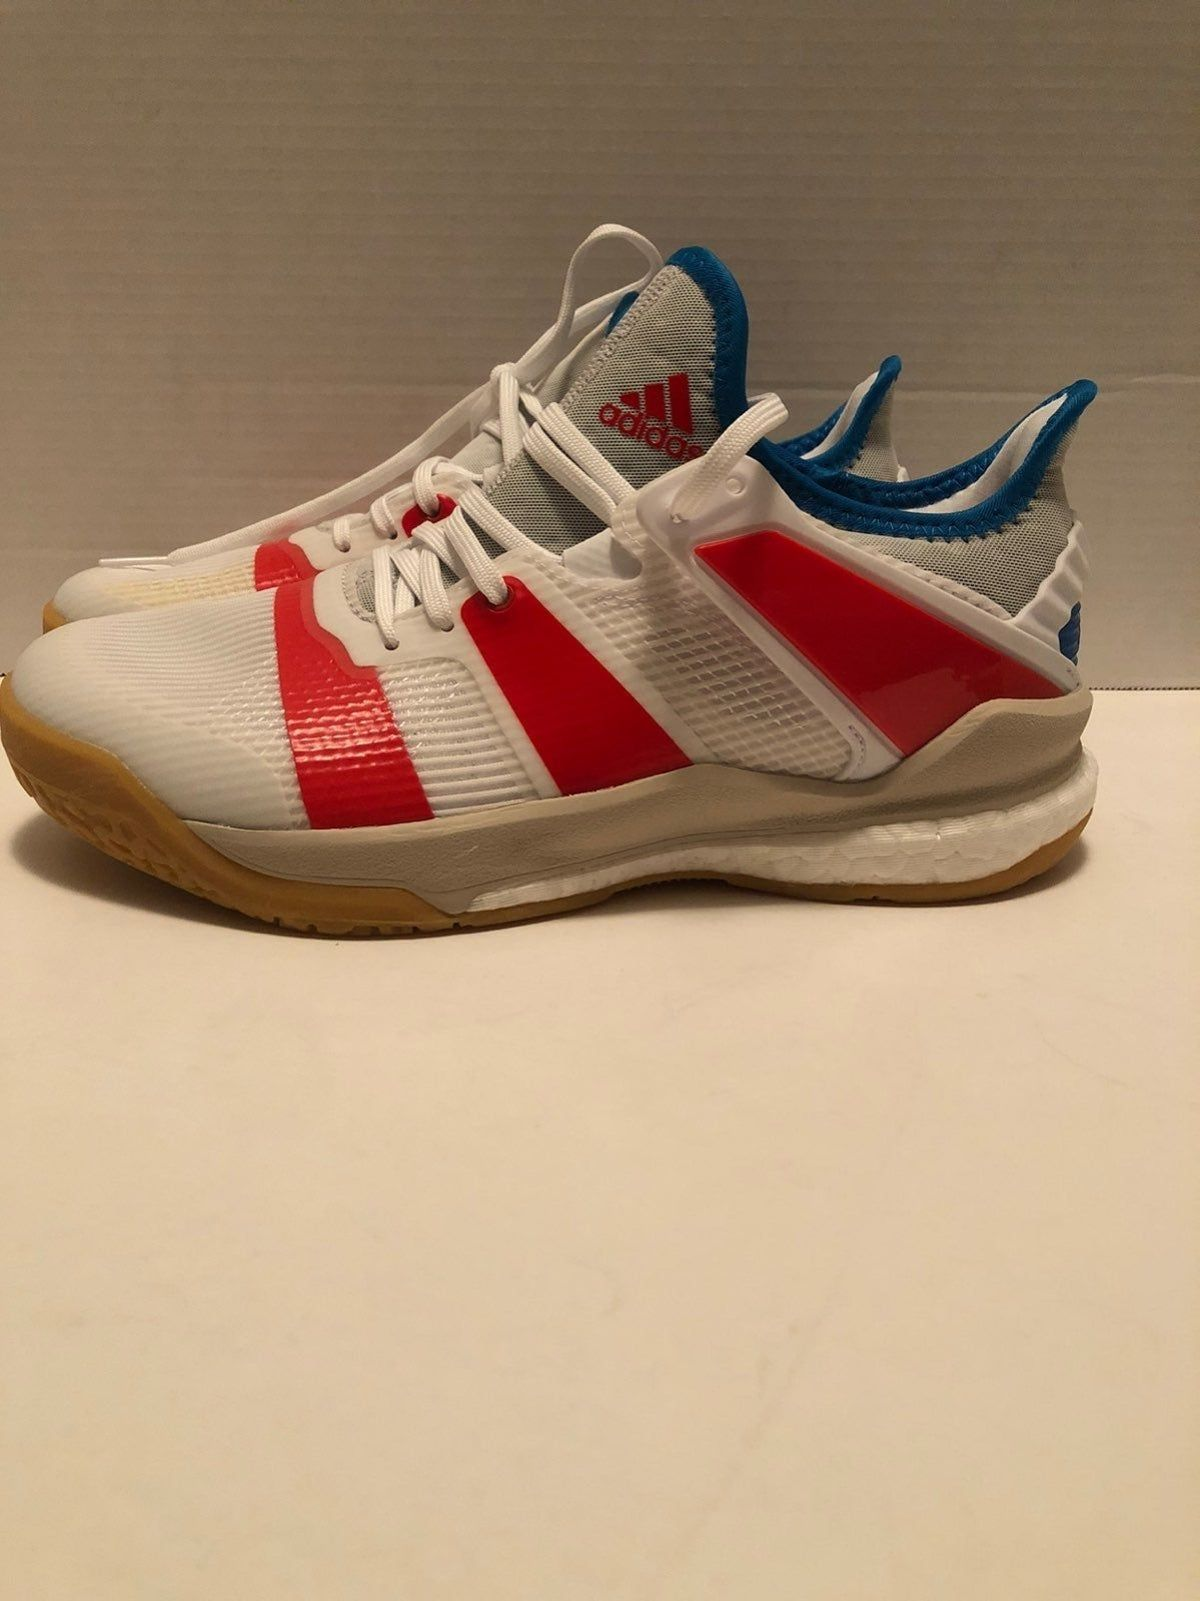 Adidas Stabil X Men S Volleyball Shoes Volleyball Shoes Mens Volleyball Shoes Mens Volleyball